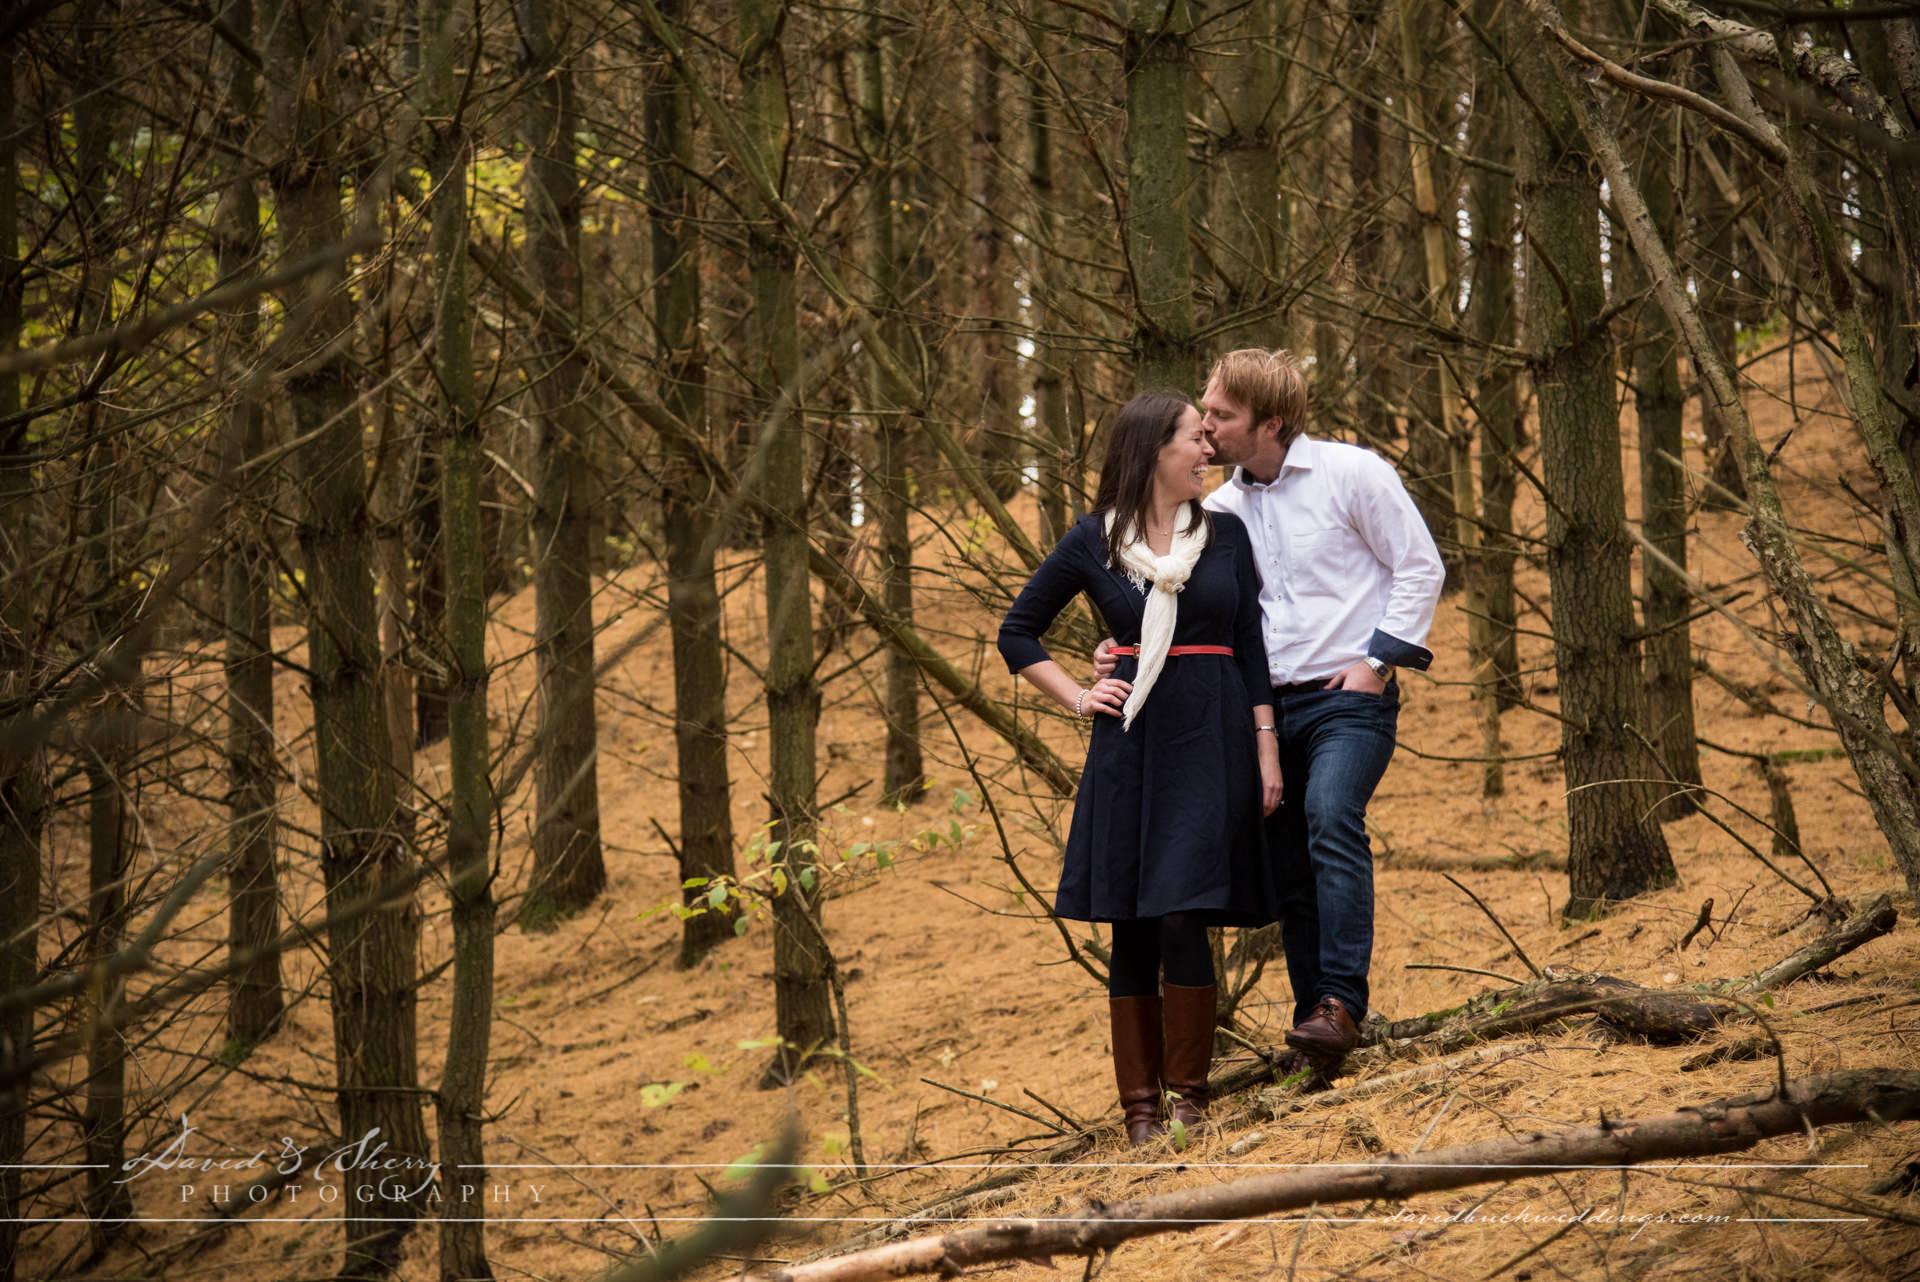 Thornbury_Heathcote_Engagement_Photos_010